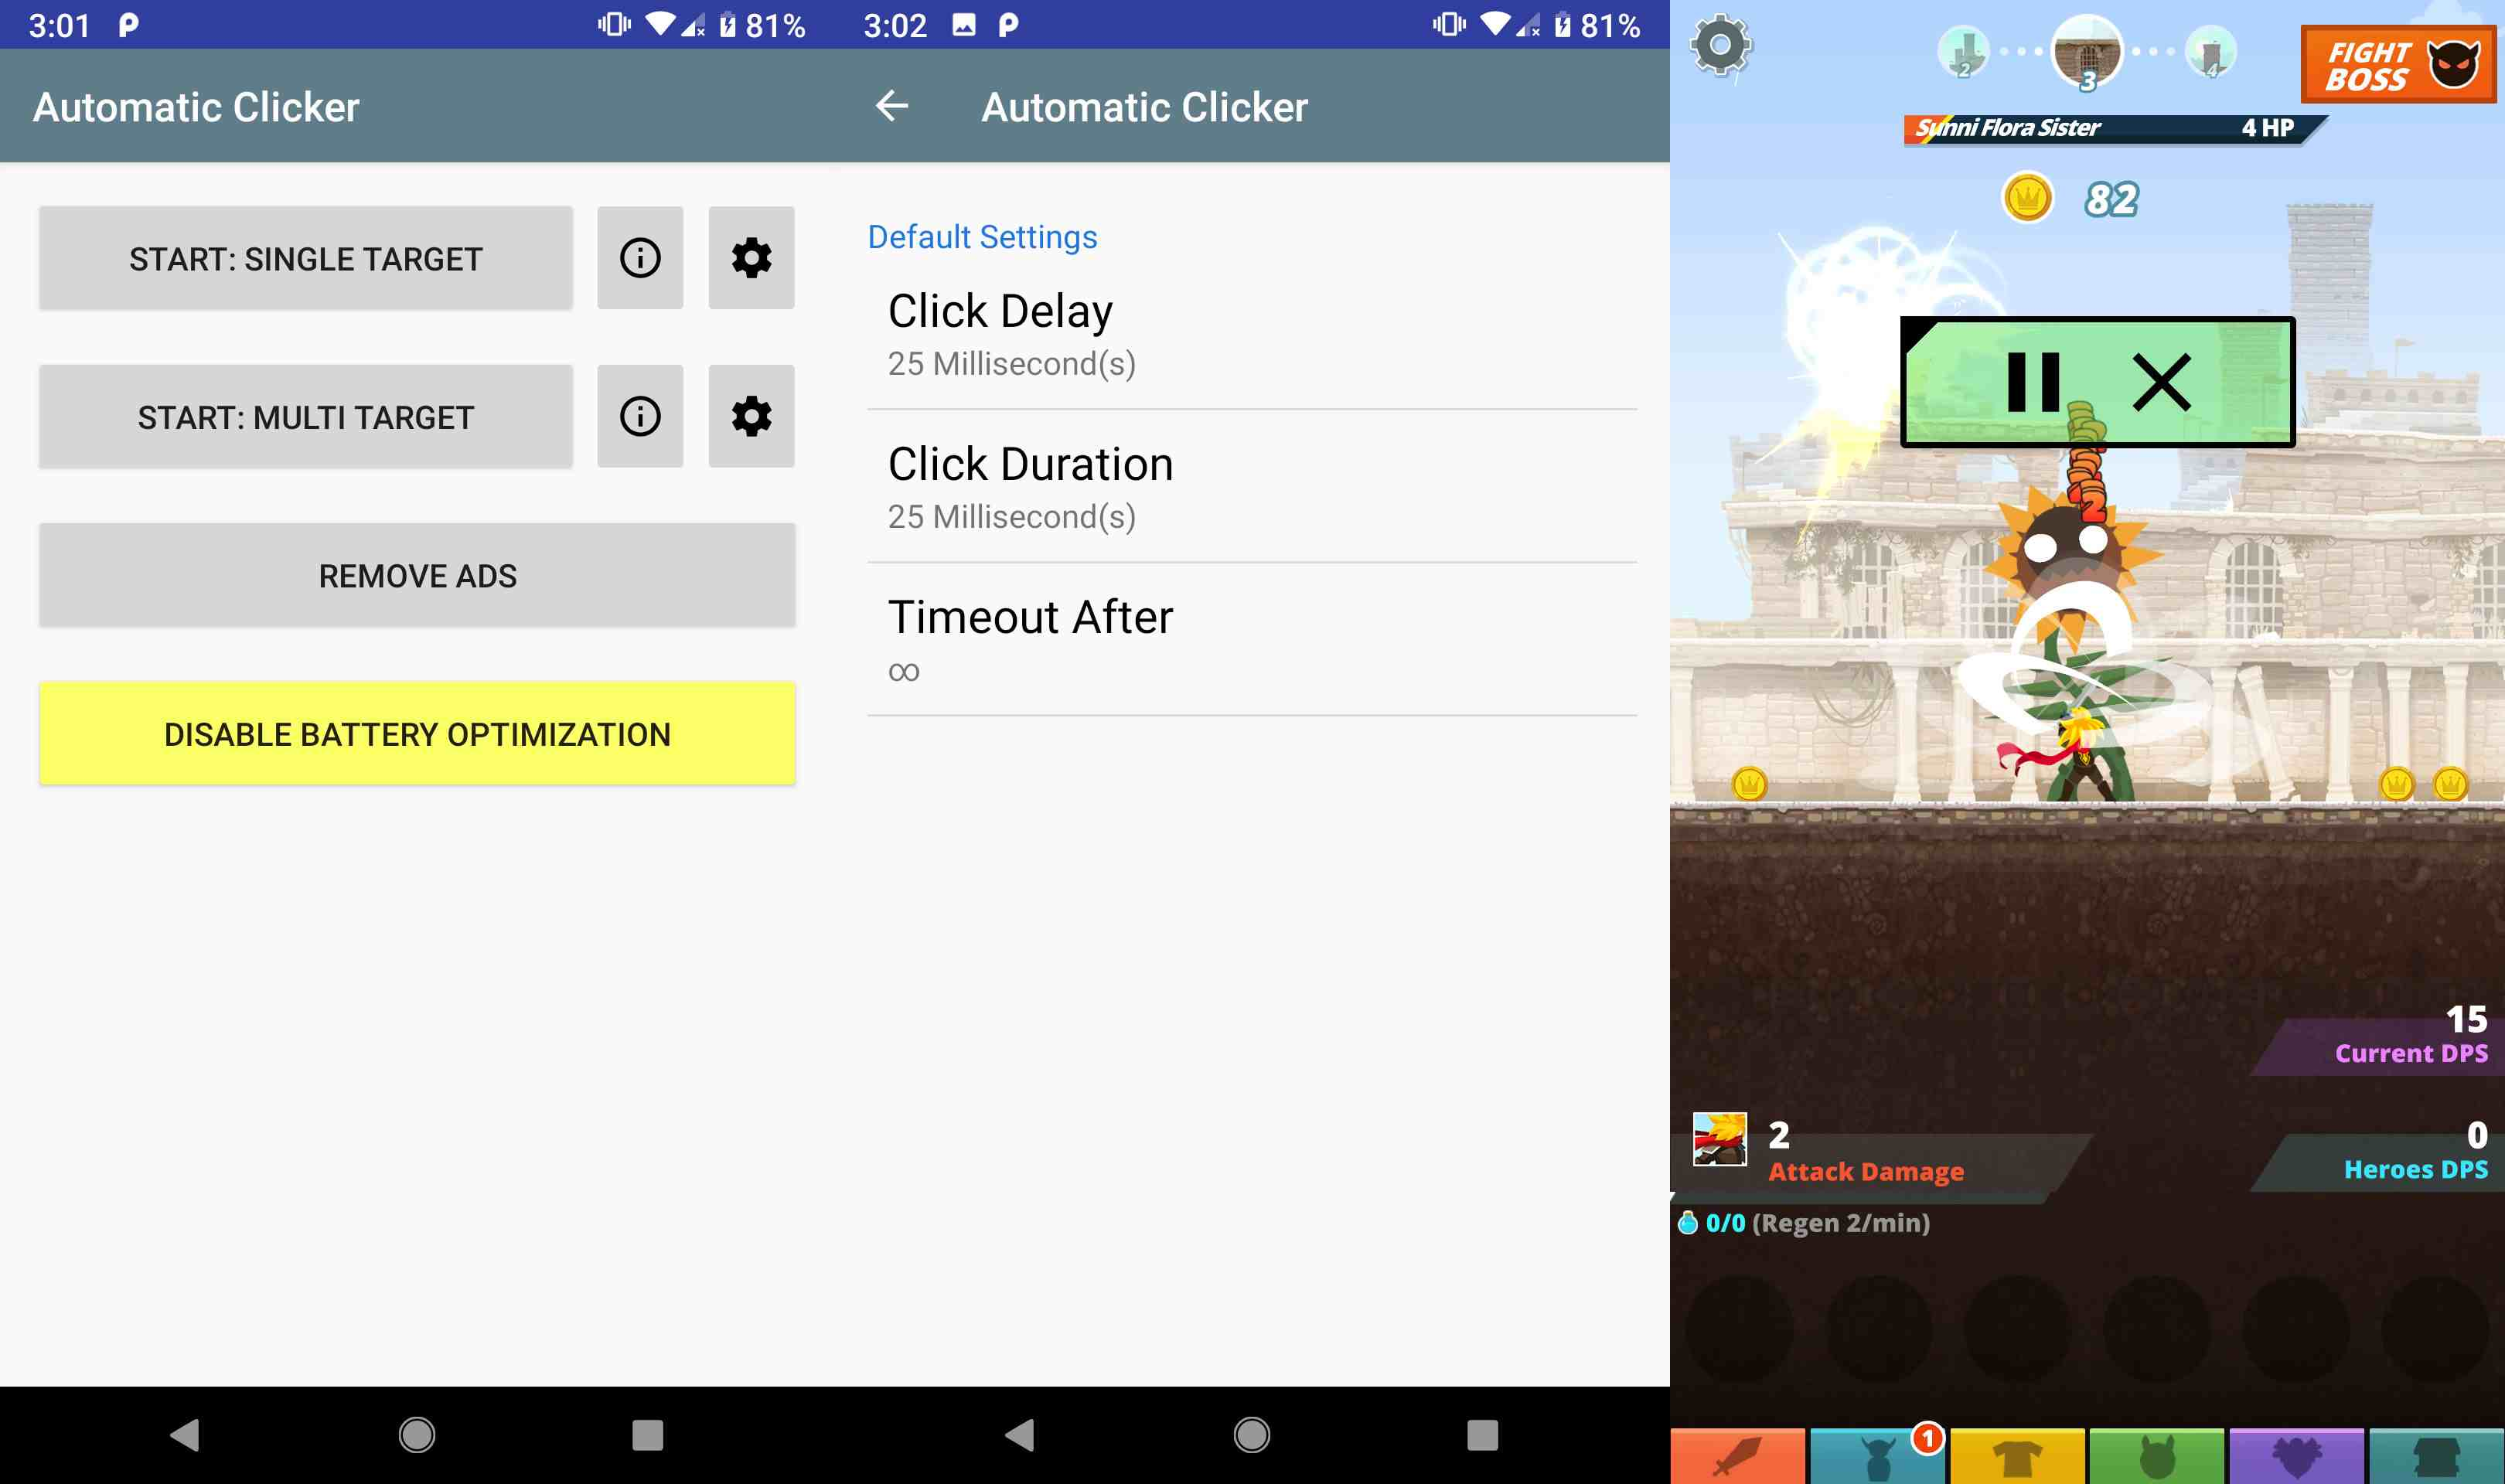 The 8 Best Auto Clicker Apps On Android Non Rooted Phones - roblox auto clicker apk source